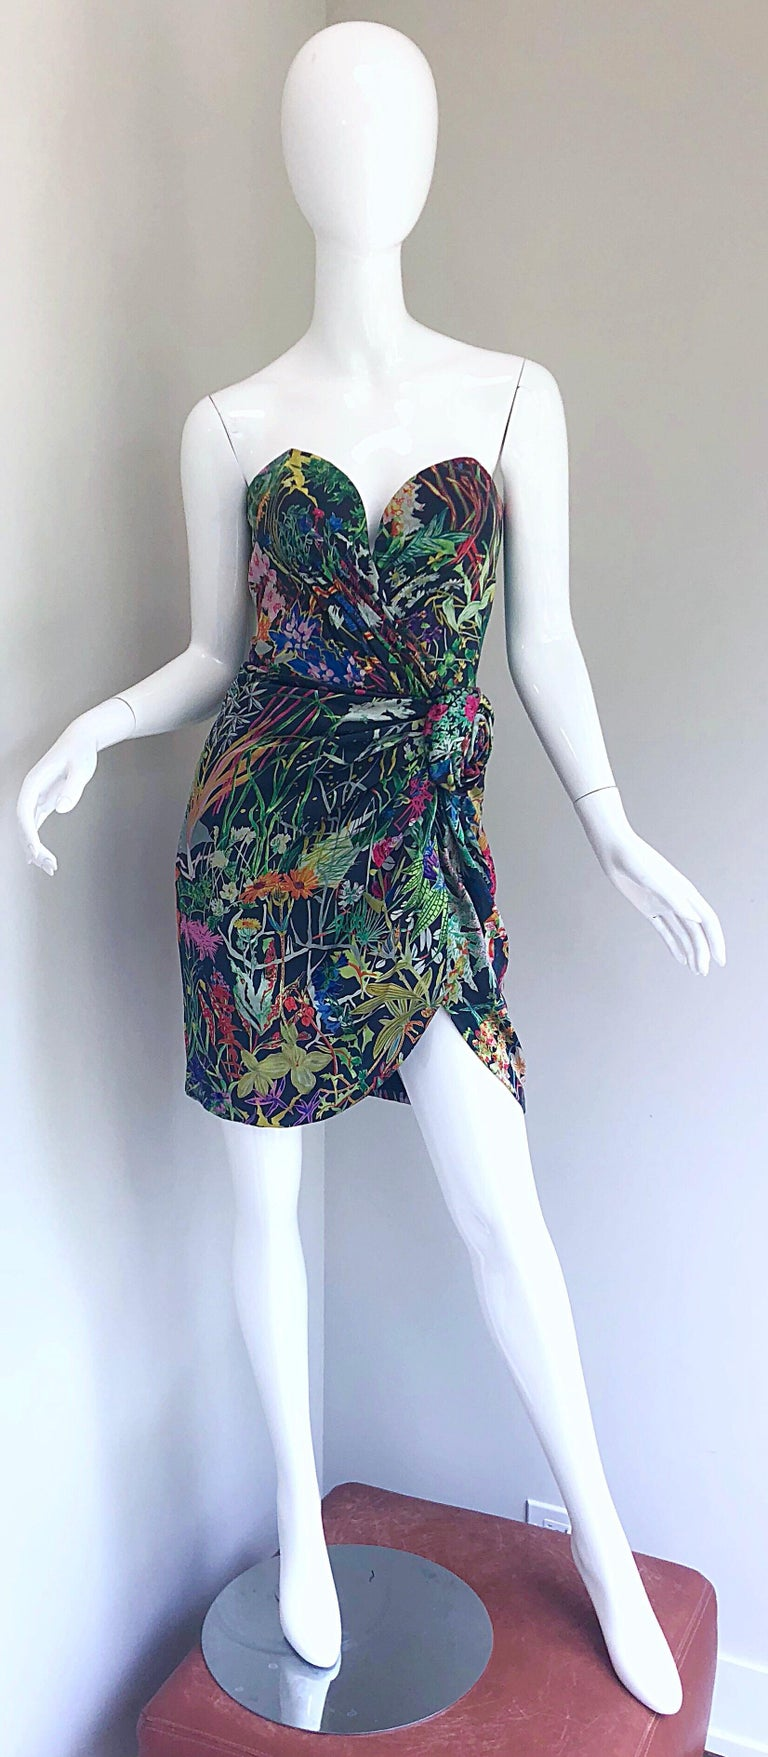 Fabulous vintage 1980s VICKY TIEL COUTURE botanical print silk strapless dress! Features amazing prints in practically every color of the rainbow; vibrant colors of green, fuchsia, purple, pink, blue, orange, red, etc. Amazing construction, with so